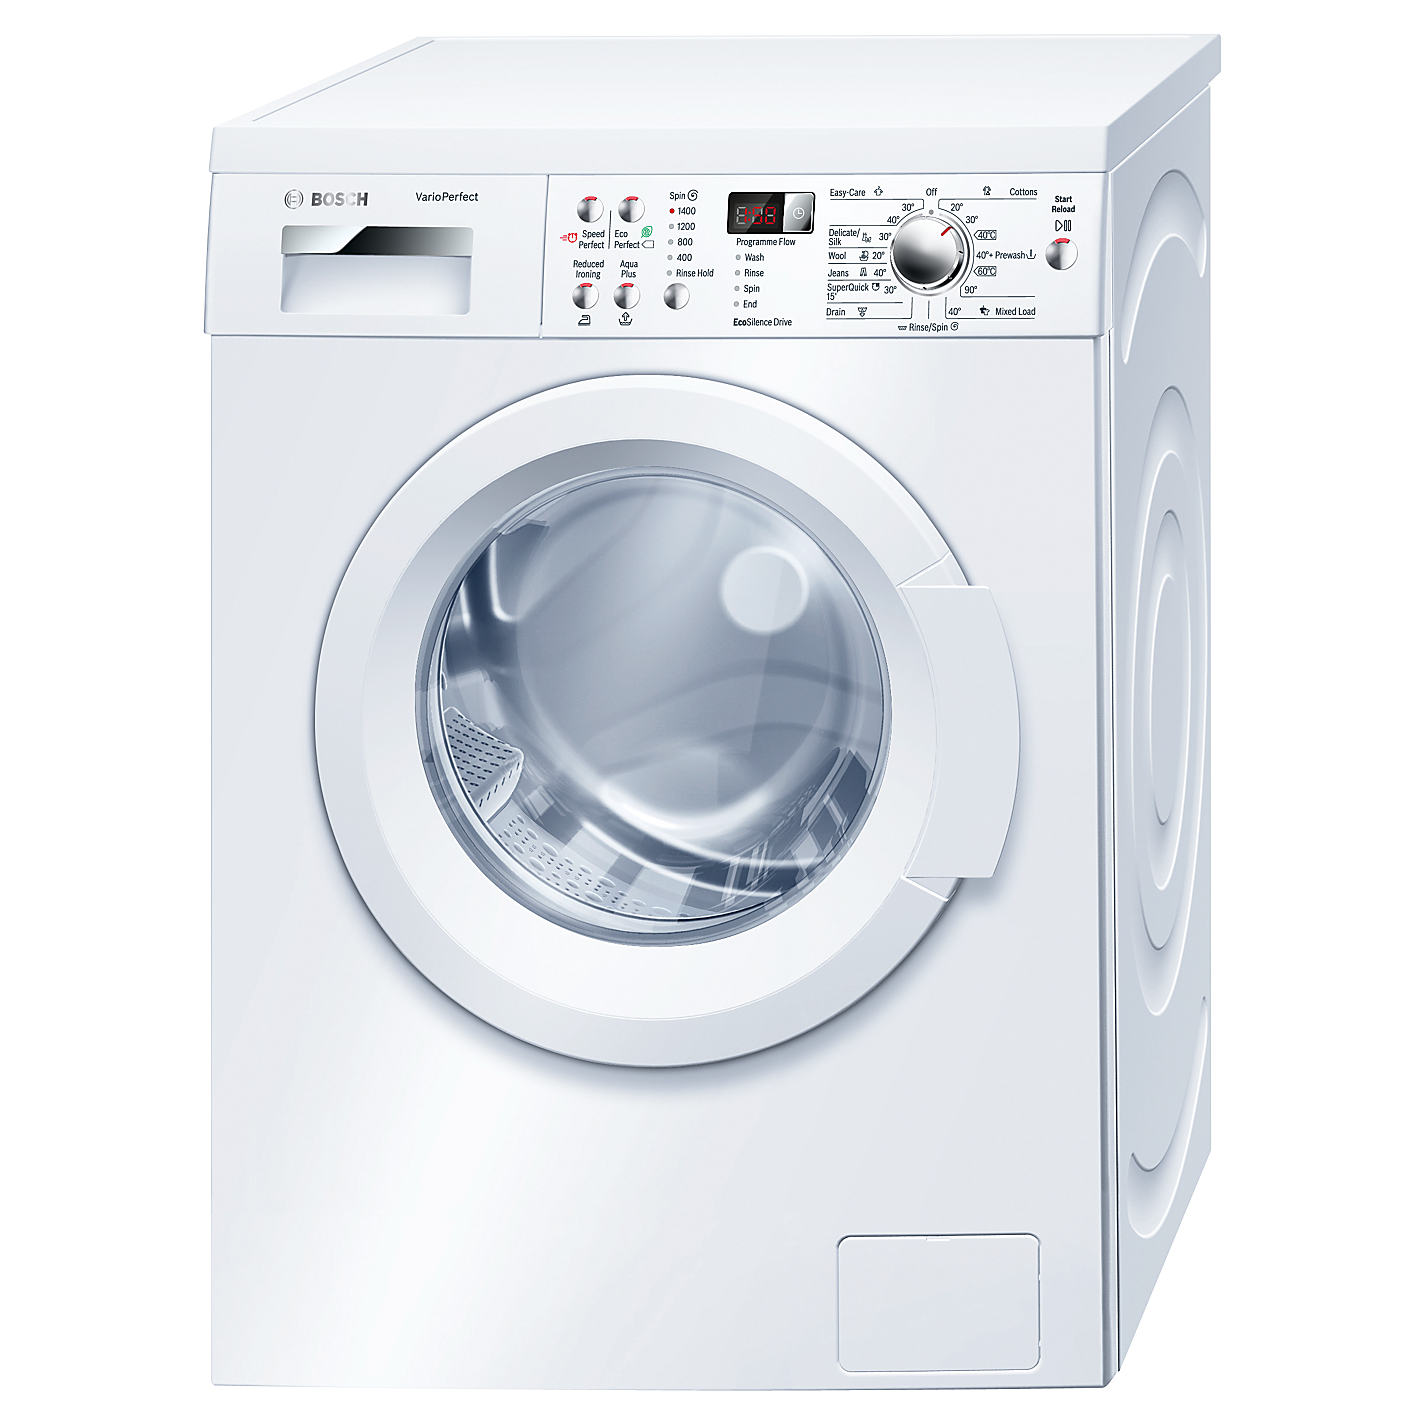 MDA Spares washing machines parts and repairs in Liverpool tumble